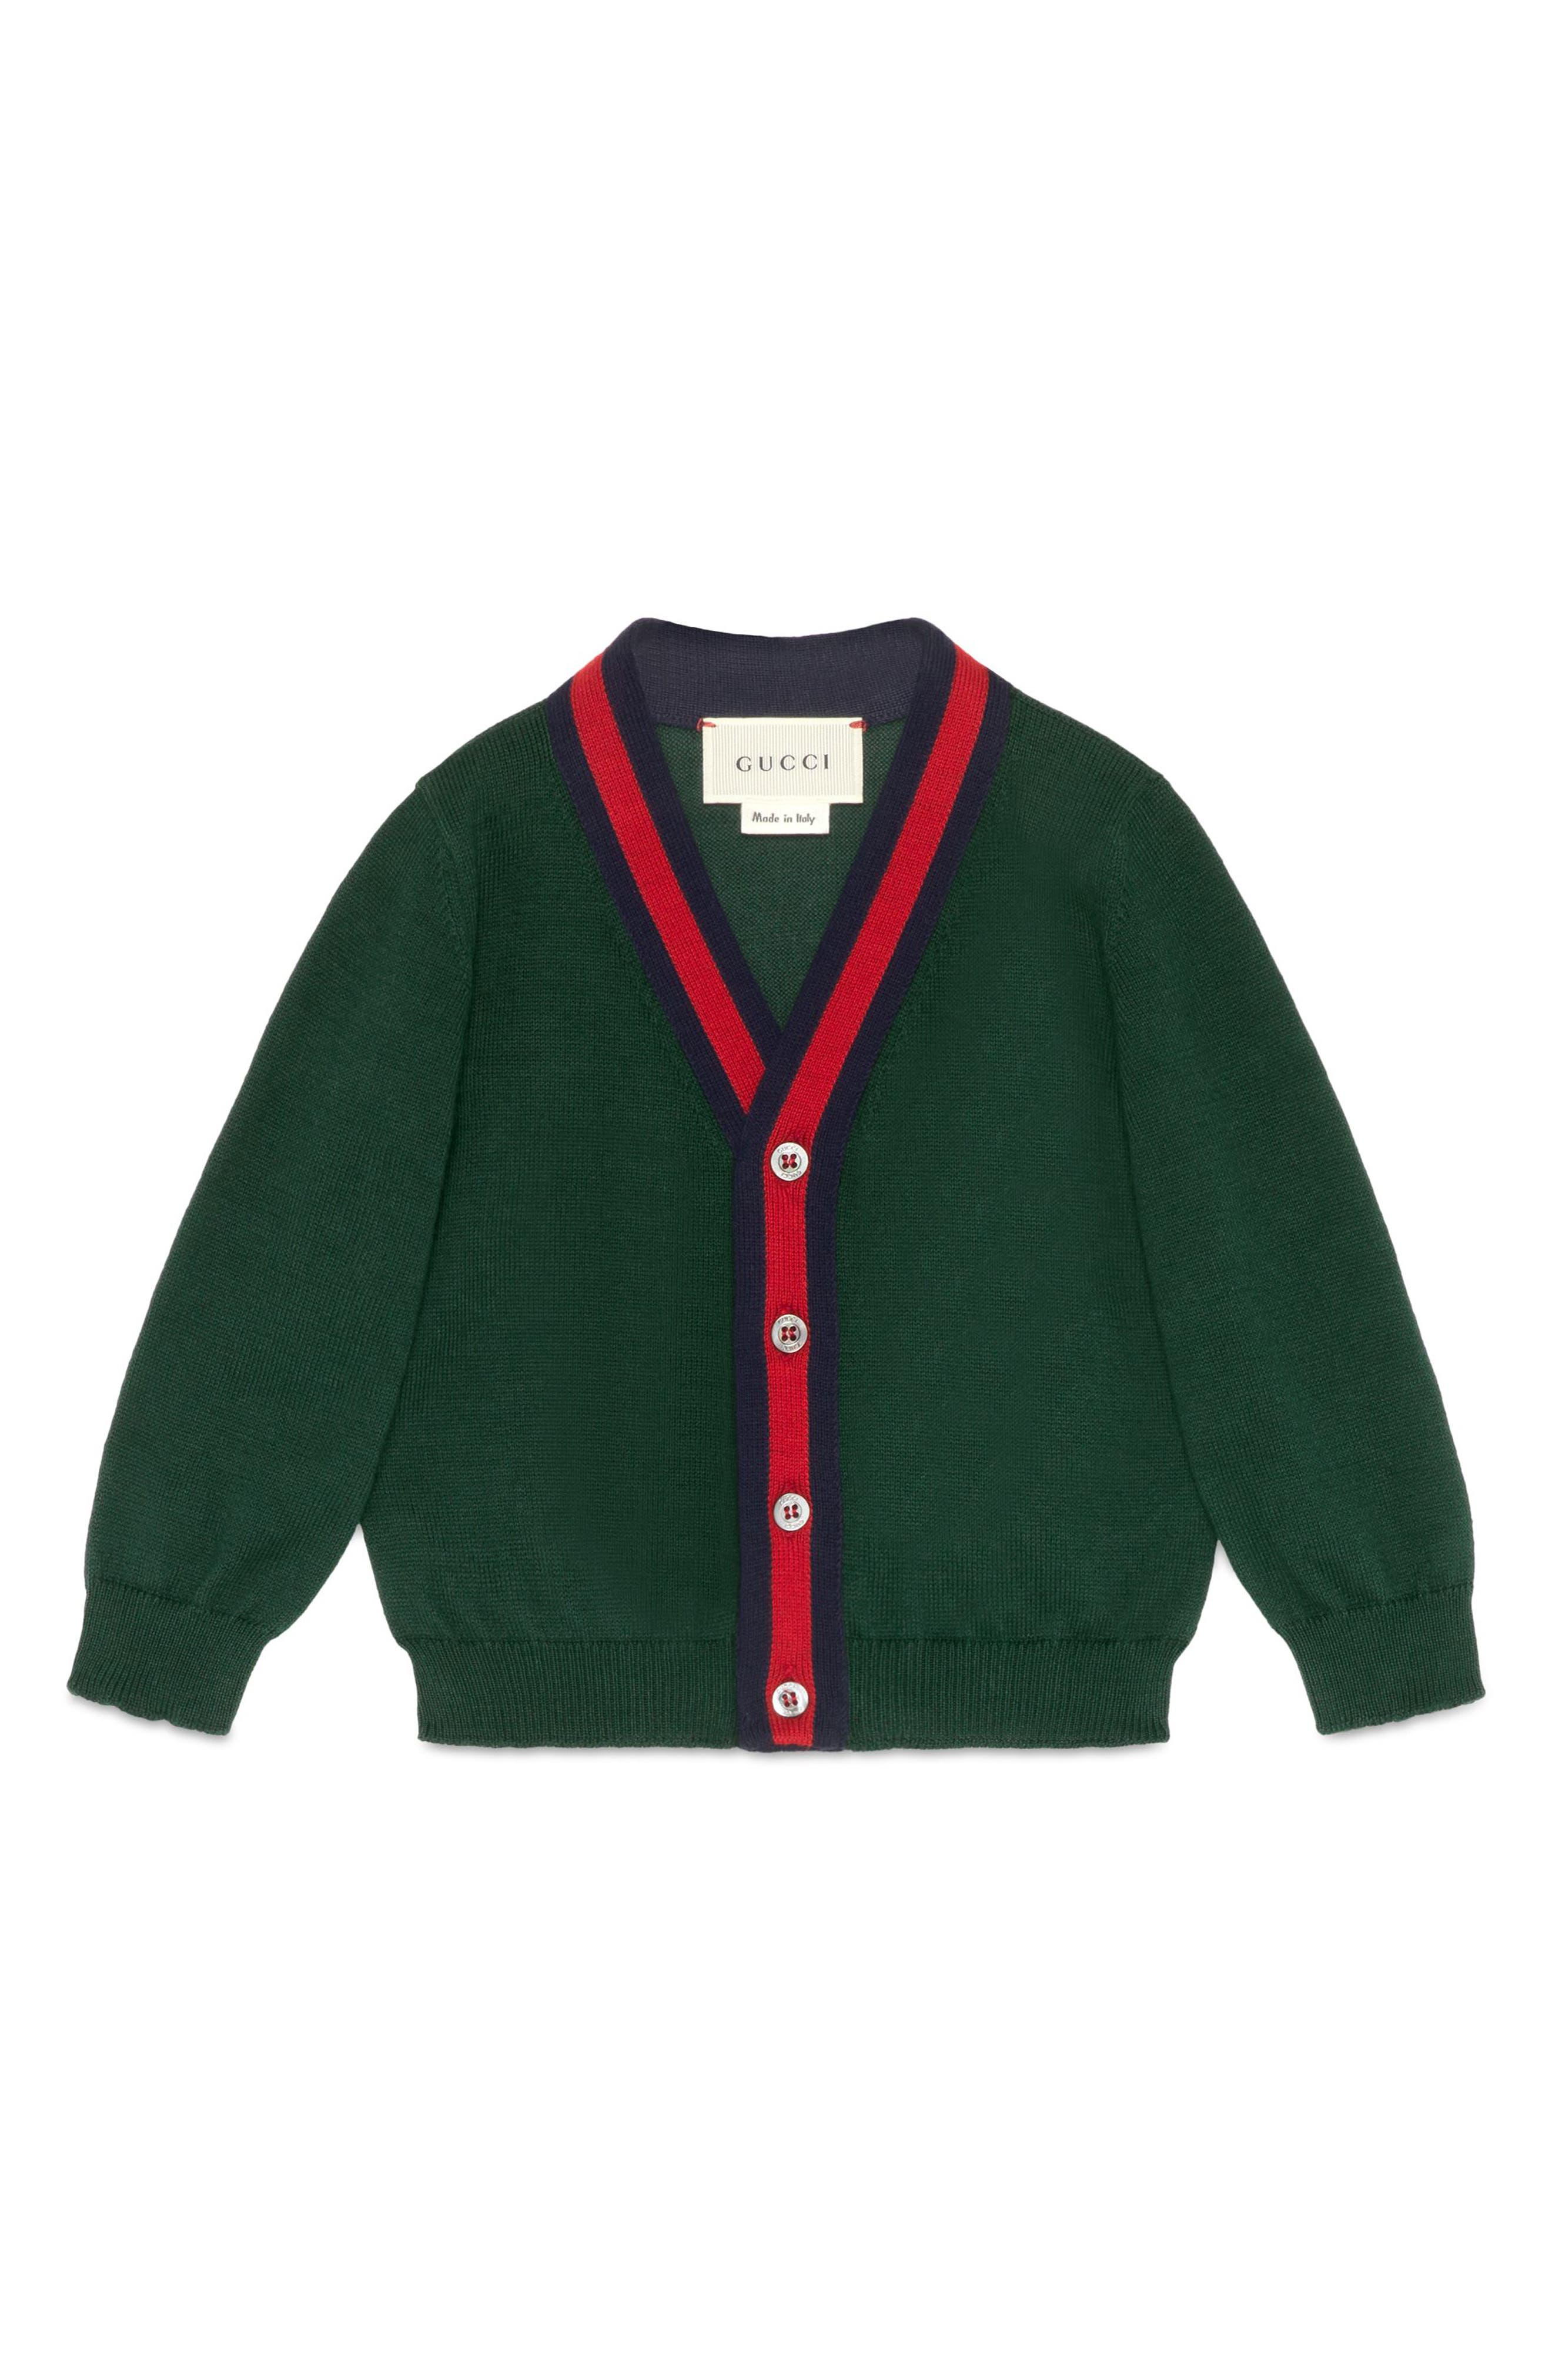 Knit Cotton Cardigan,                             Main thumbnail 1, color,                             Gucci Green